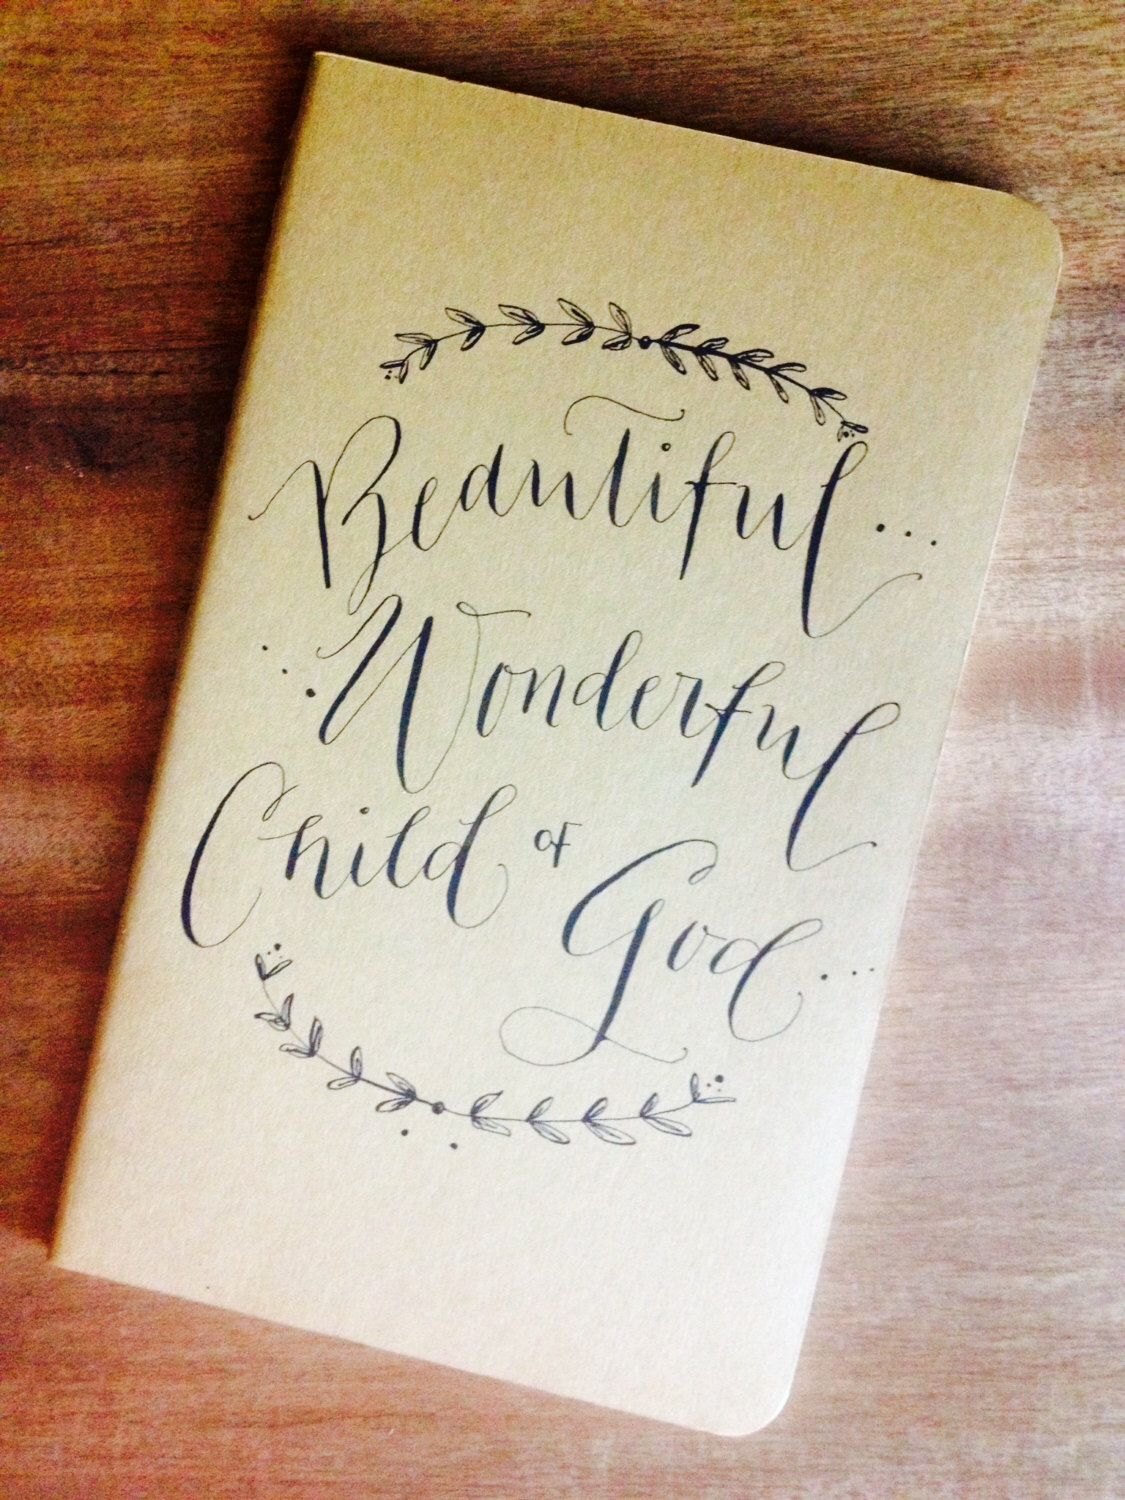 Personalized Journal with Custom Hand Written Quote in Calligraphy by BPCalligraphy on Etsy https://www.etsy.com/listing/202362887/personalized-journal-with-custom-hand